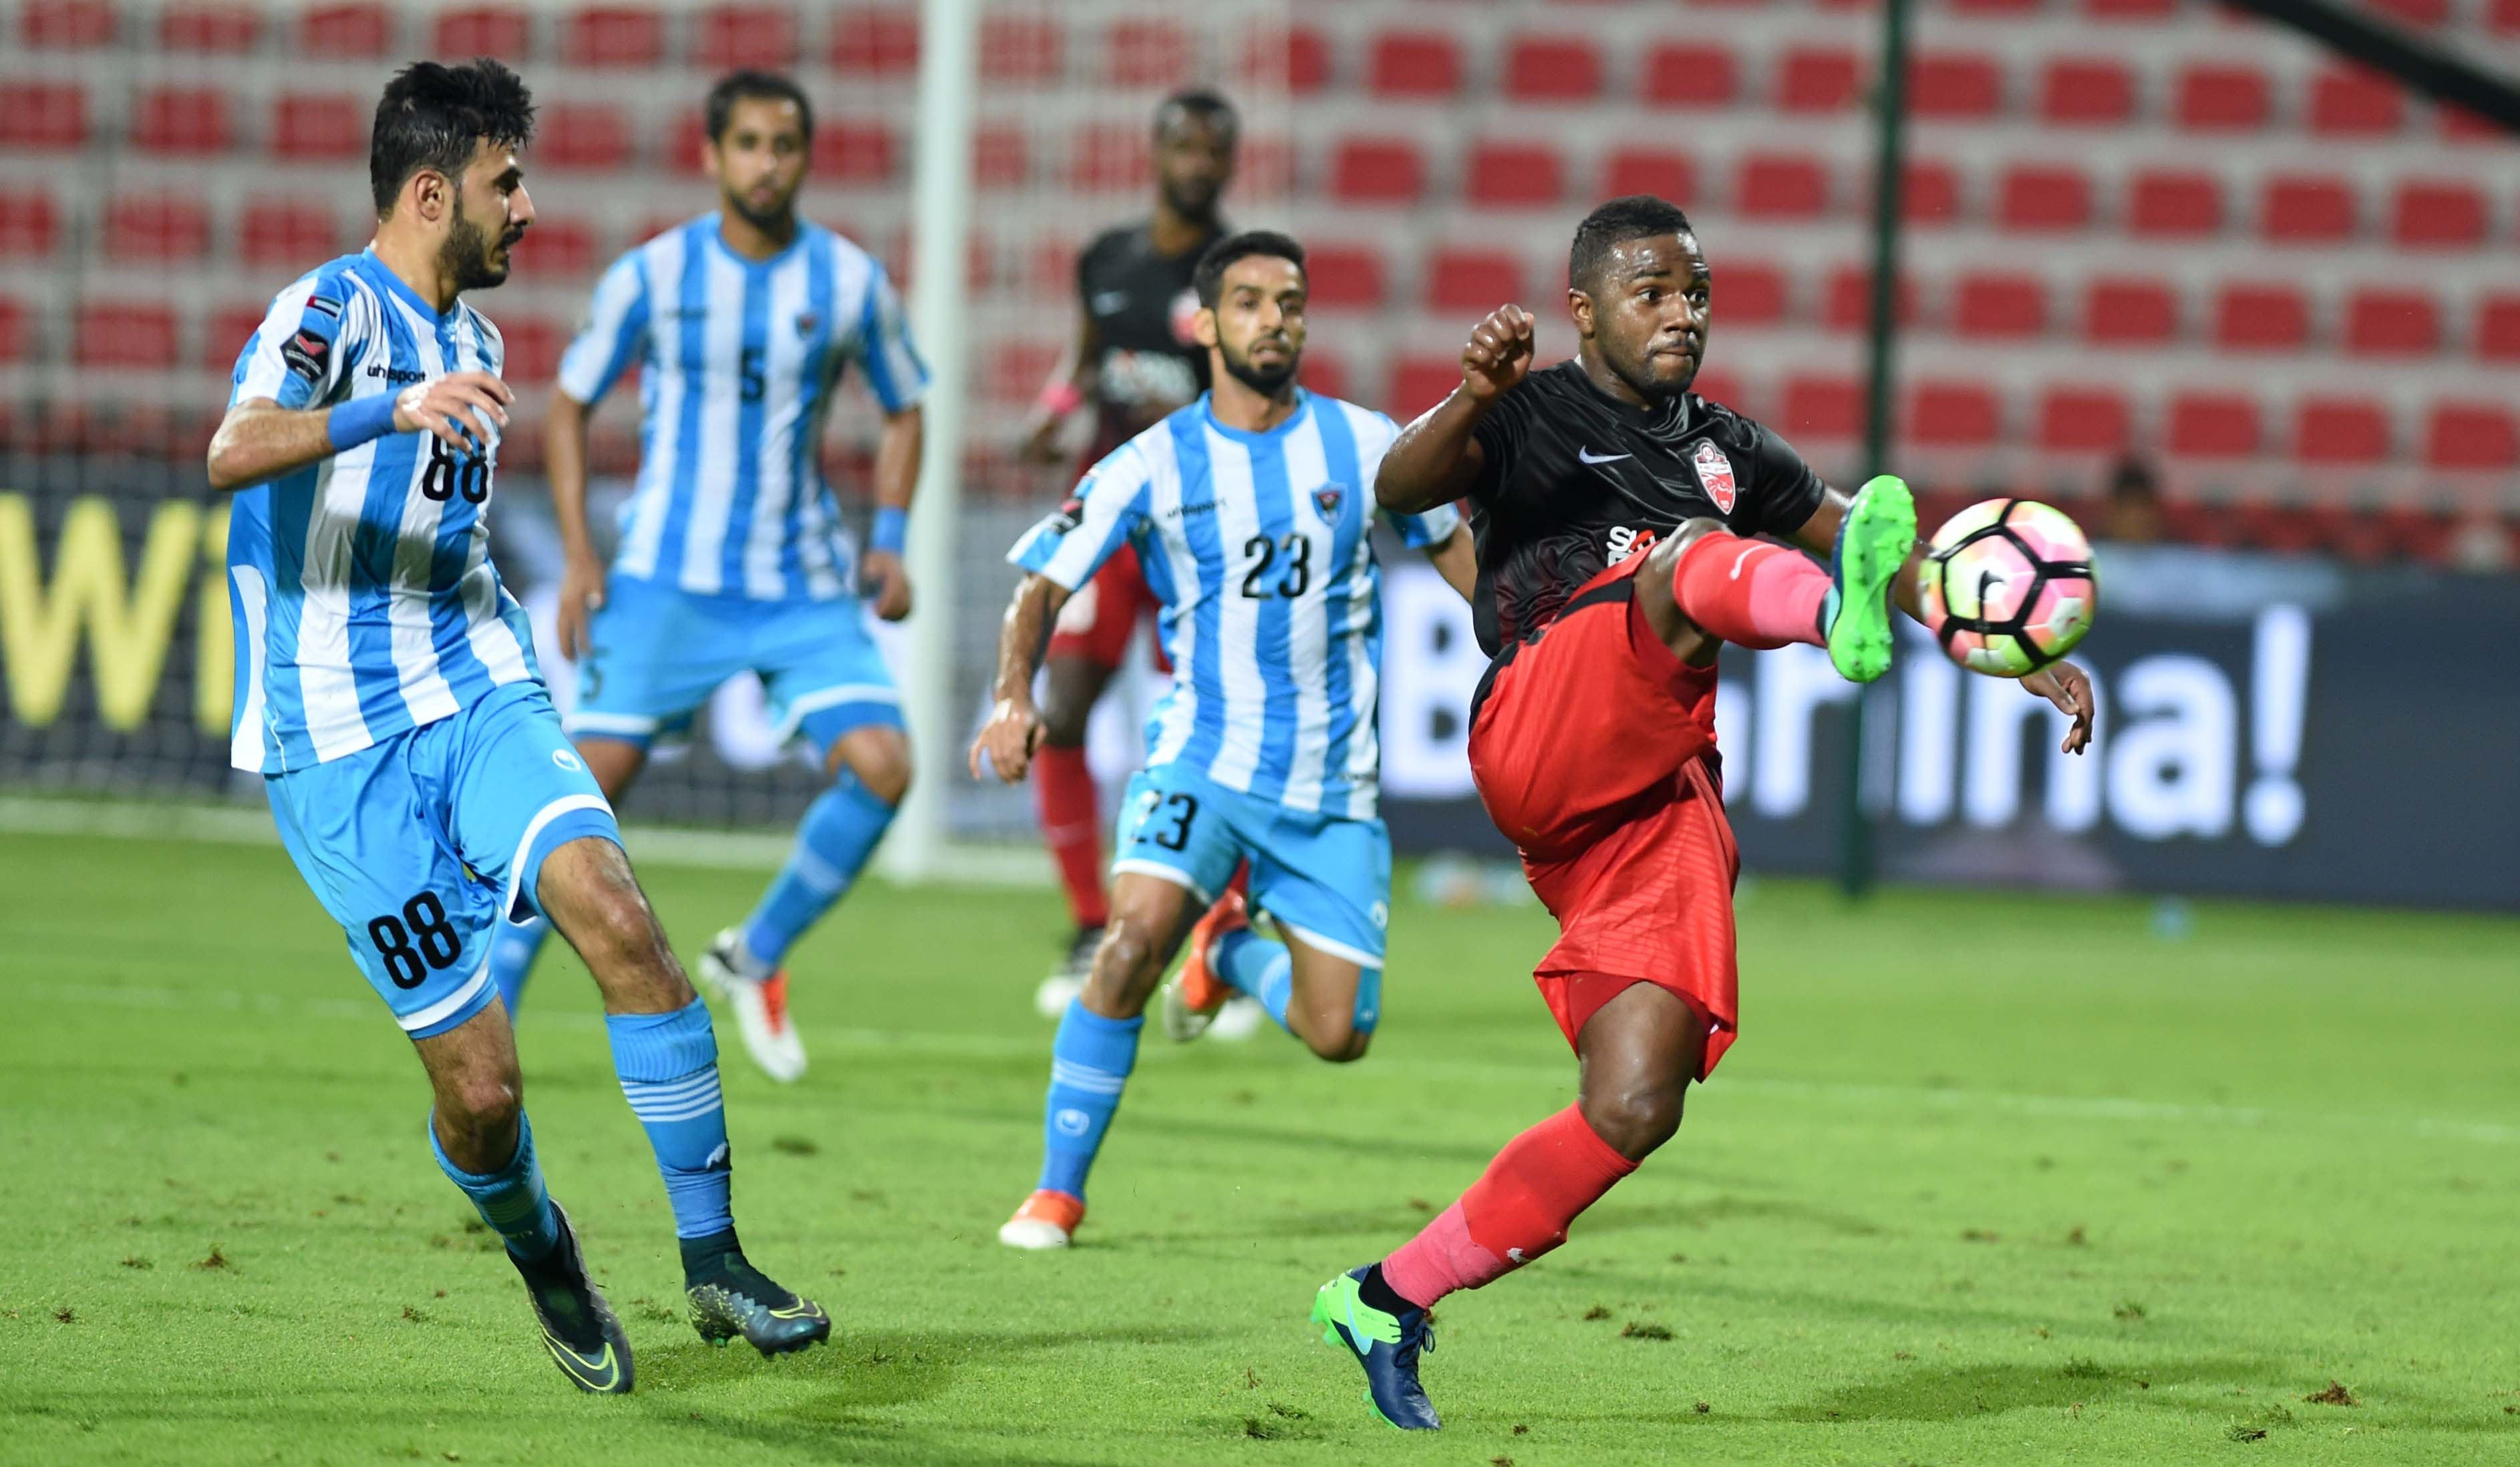 It was a comfortable evening's work for Al Ahli.